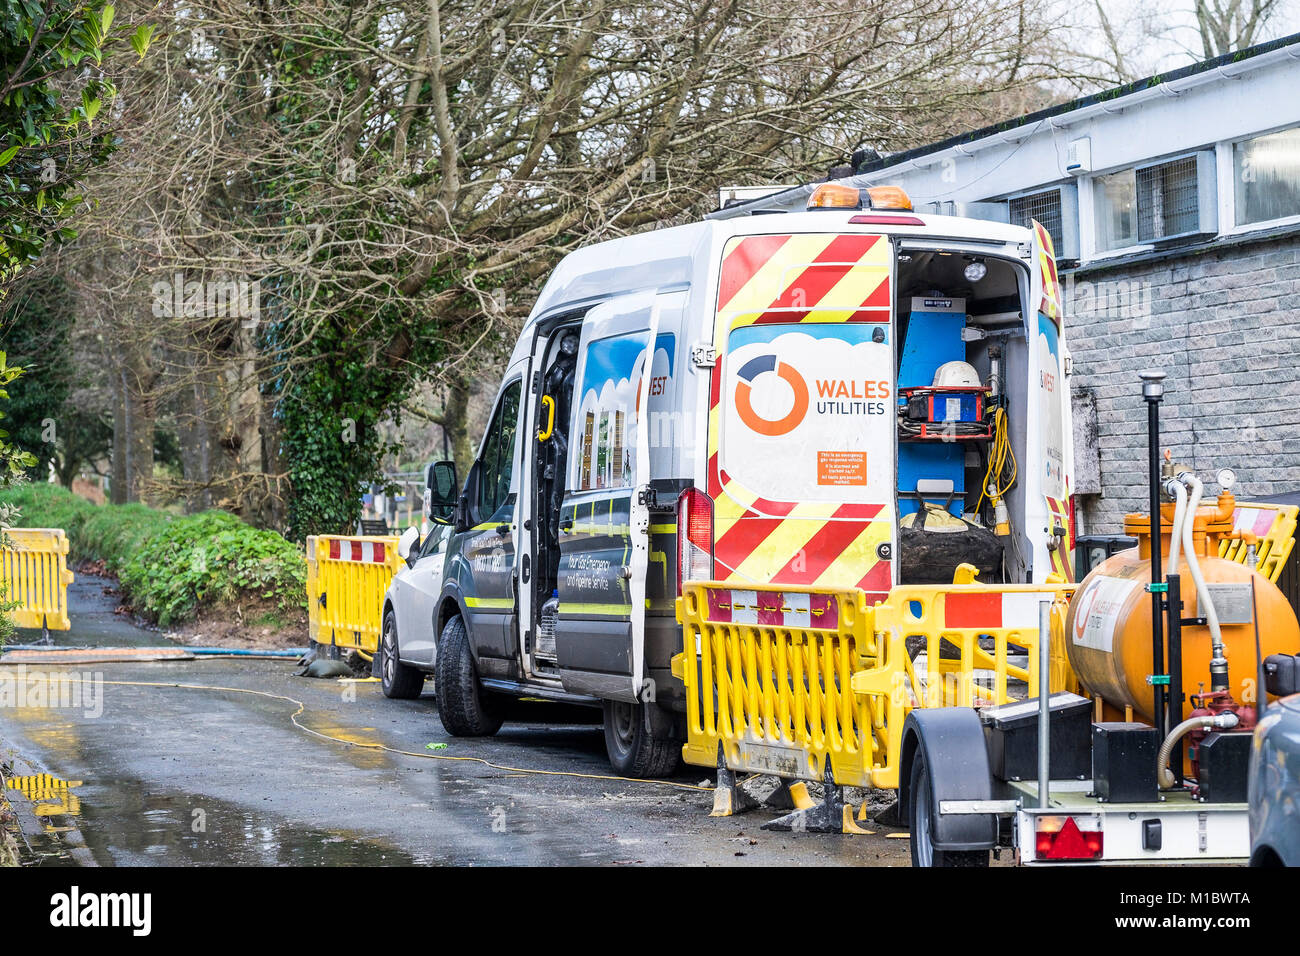 Wales&West Utilities vehicle on an emergency call out to repair a gas leak in Newquay Cornwall. - Stock Image